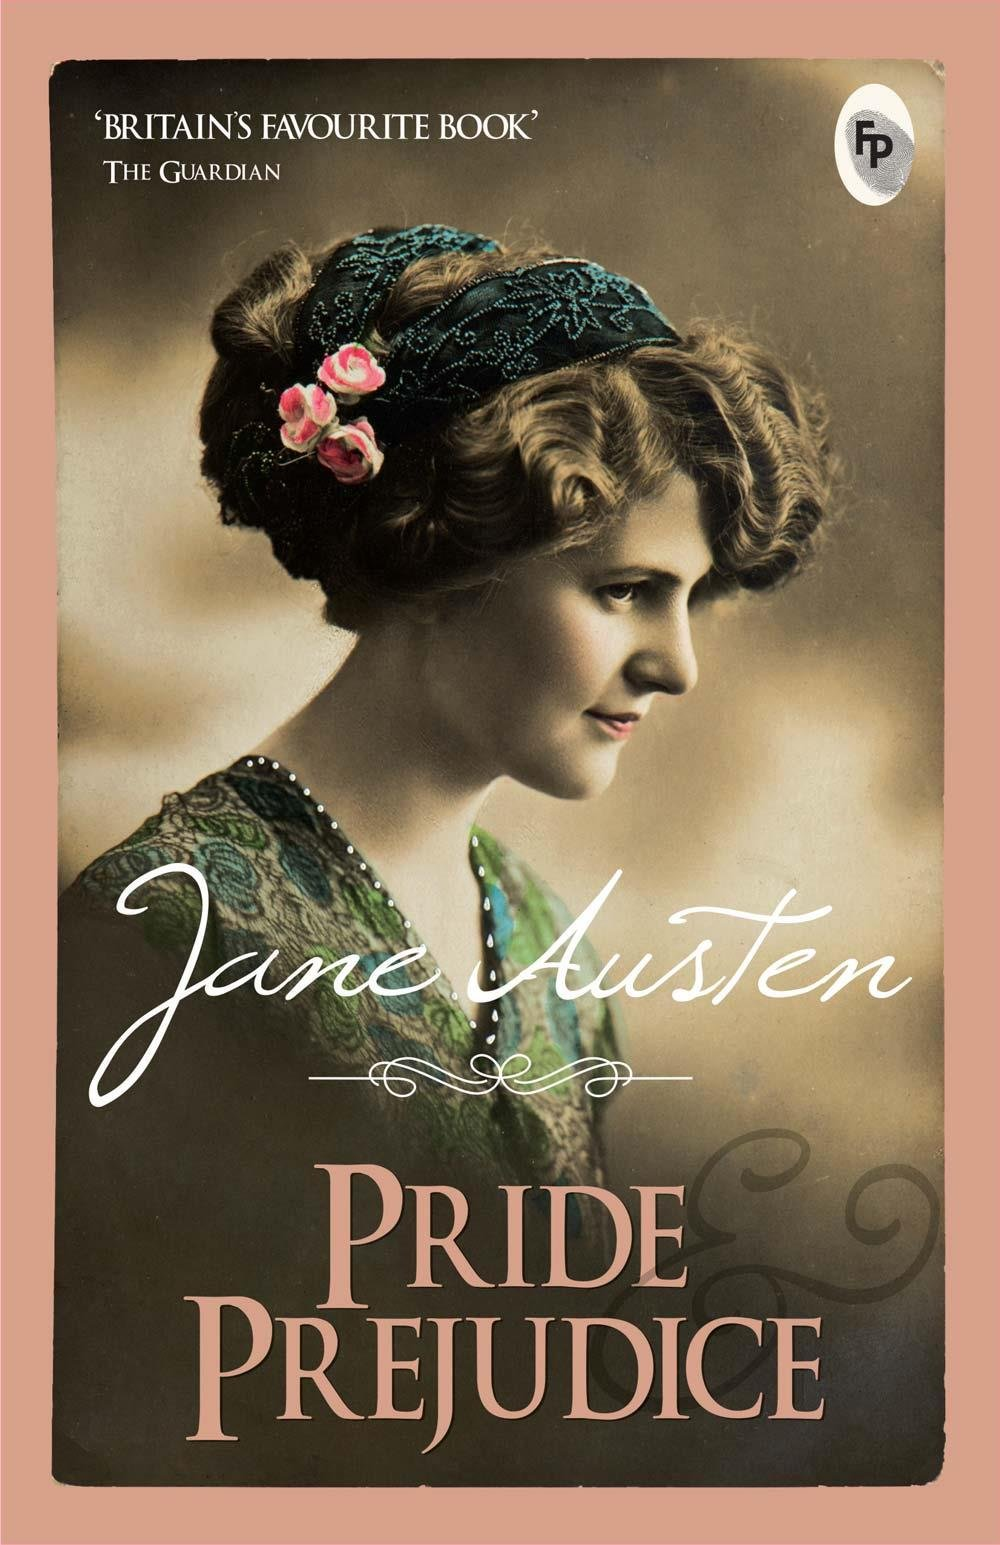 the different marriages in pride and prejudice a novel by jane austen In pride and prejudice, jane austen comments that marriage in her time is a  financial  themes of the novel) i think that pride comes in for the sharper  criticism by jane austen  they have a complex relationship, they complement  each other.